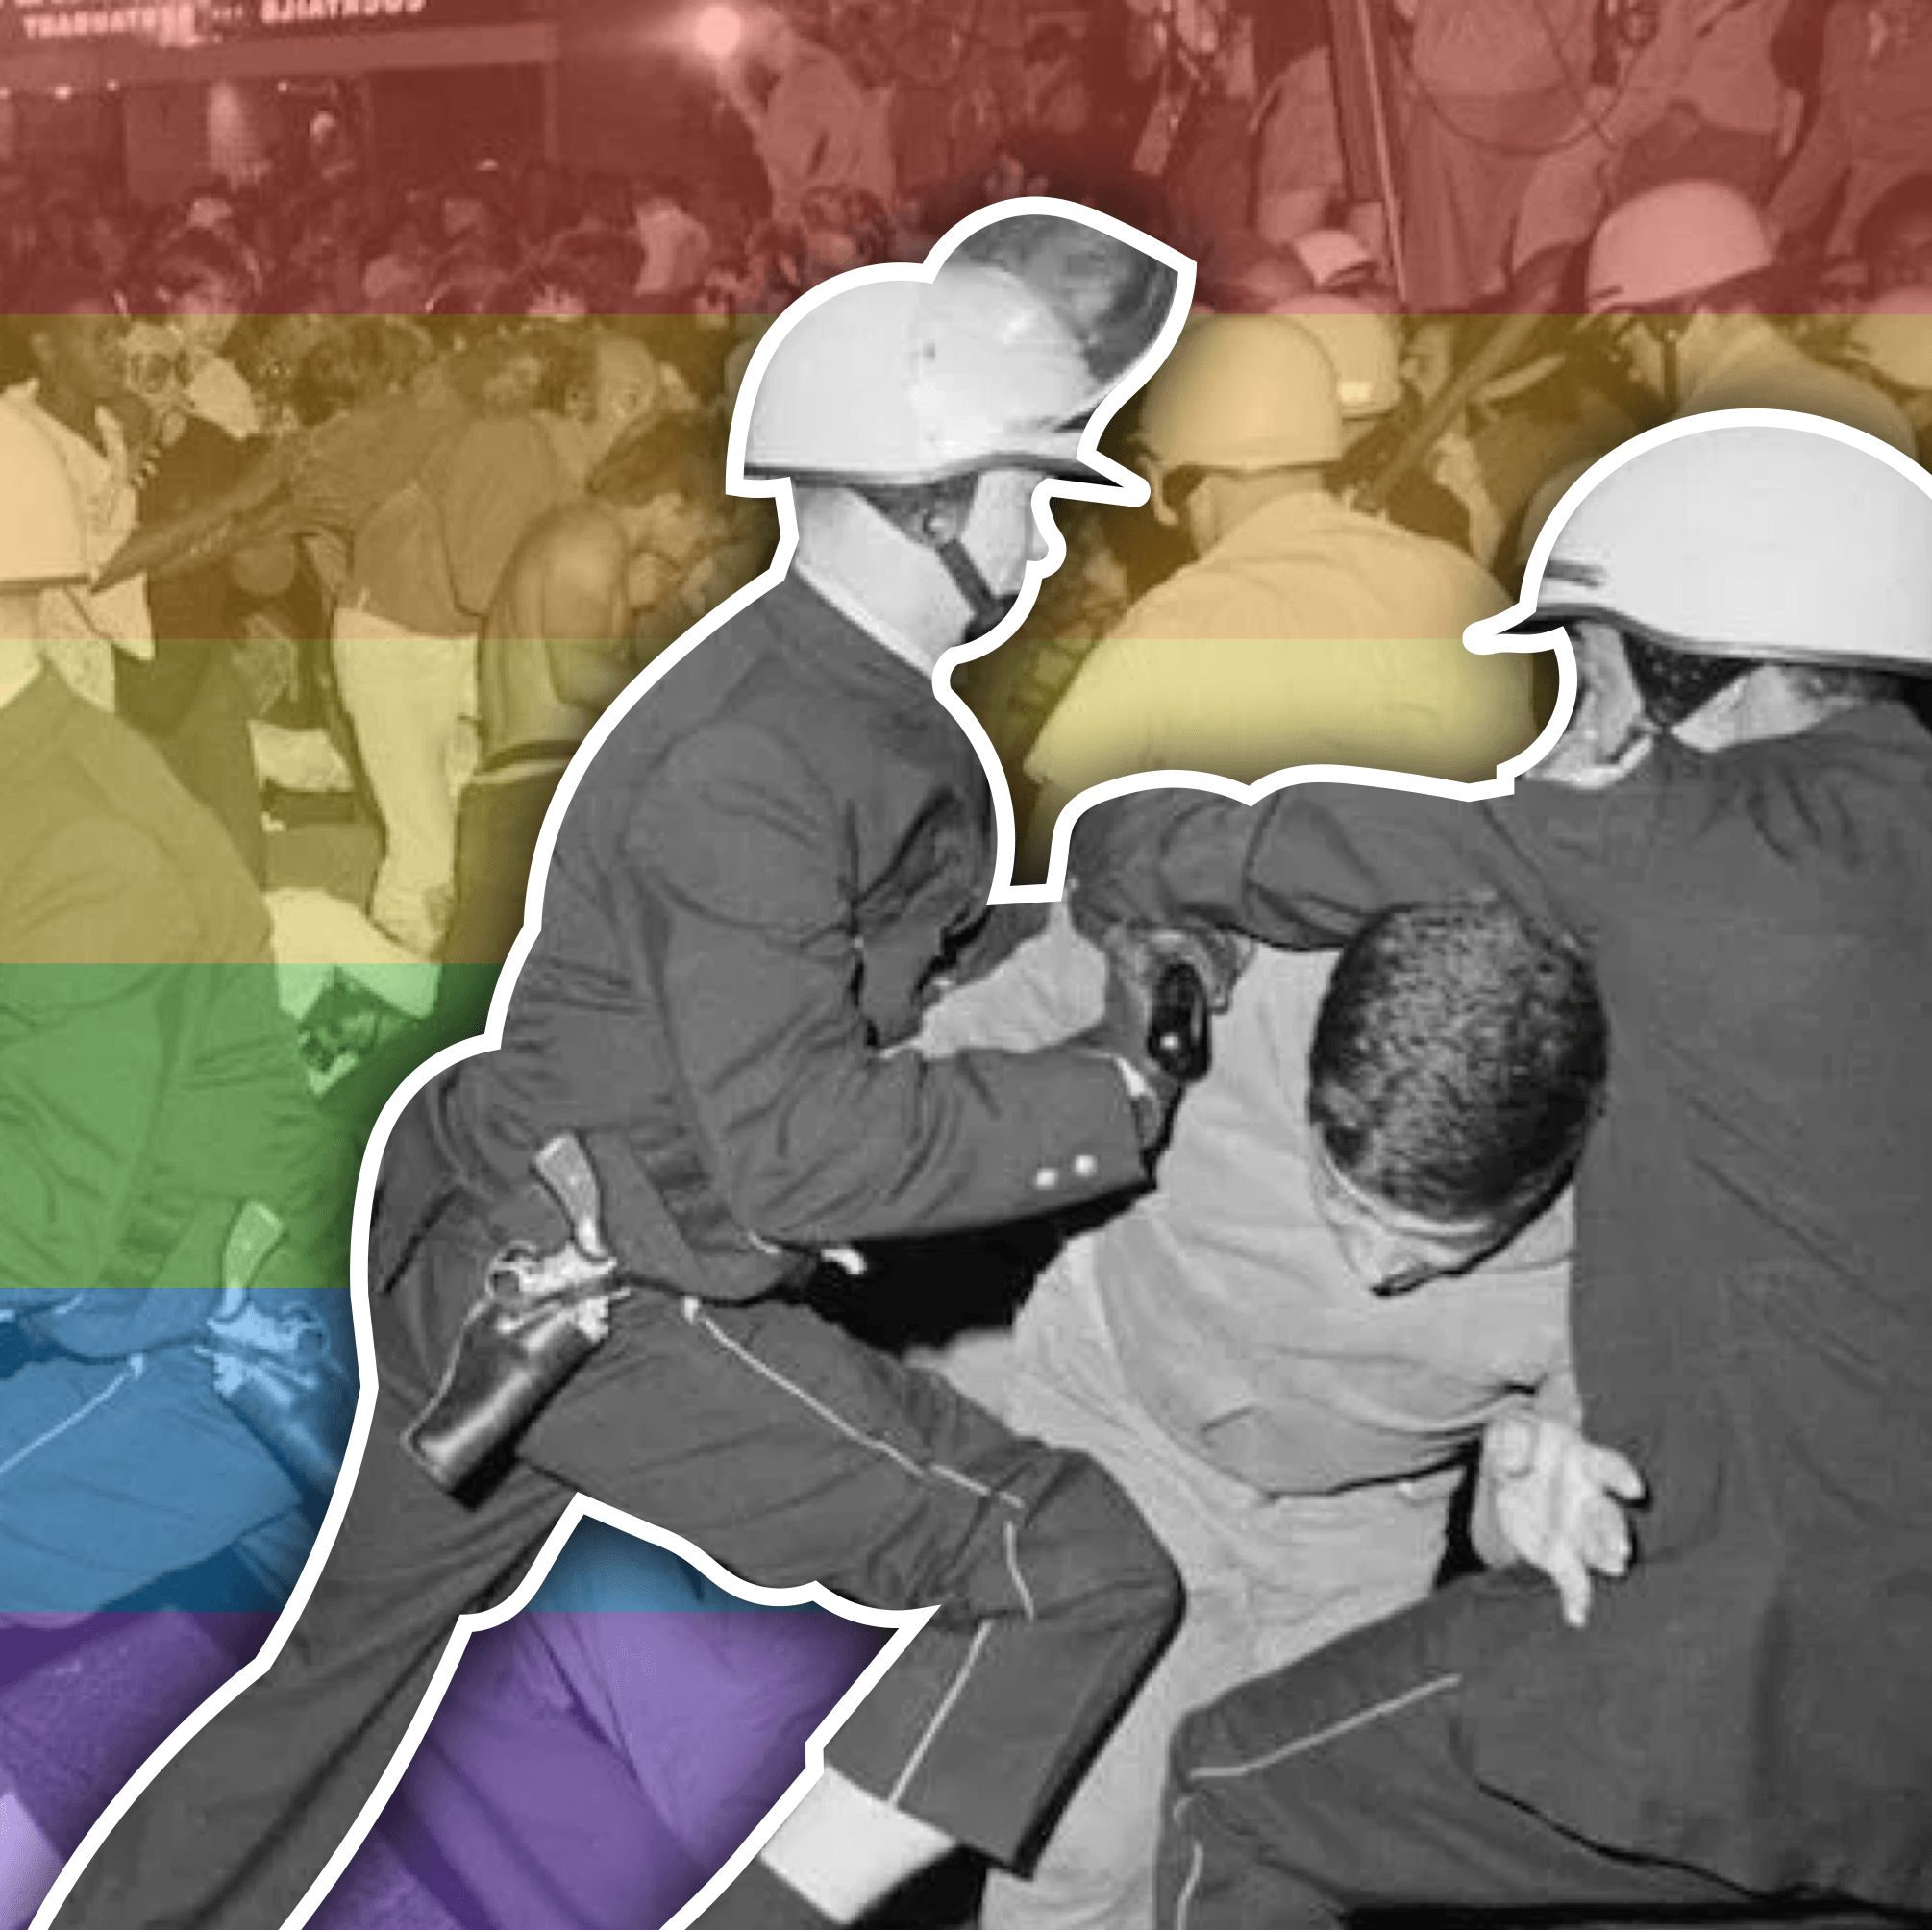 Stonewall: How Riots Sparked the LGBTQ+ Rights Movement